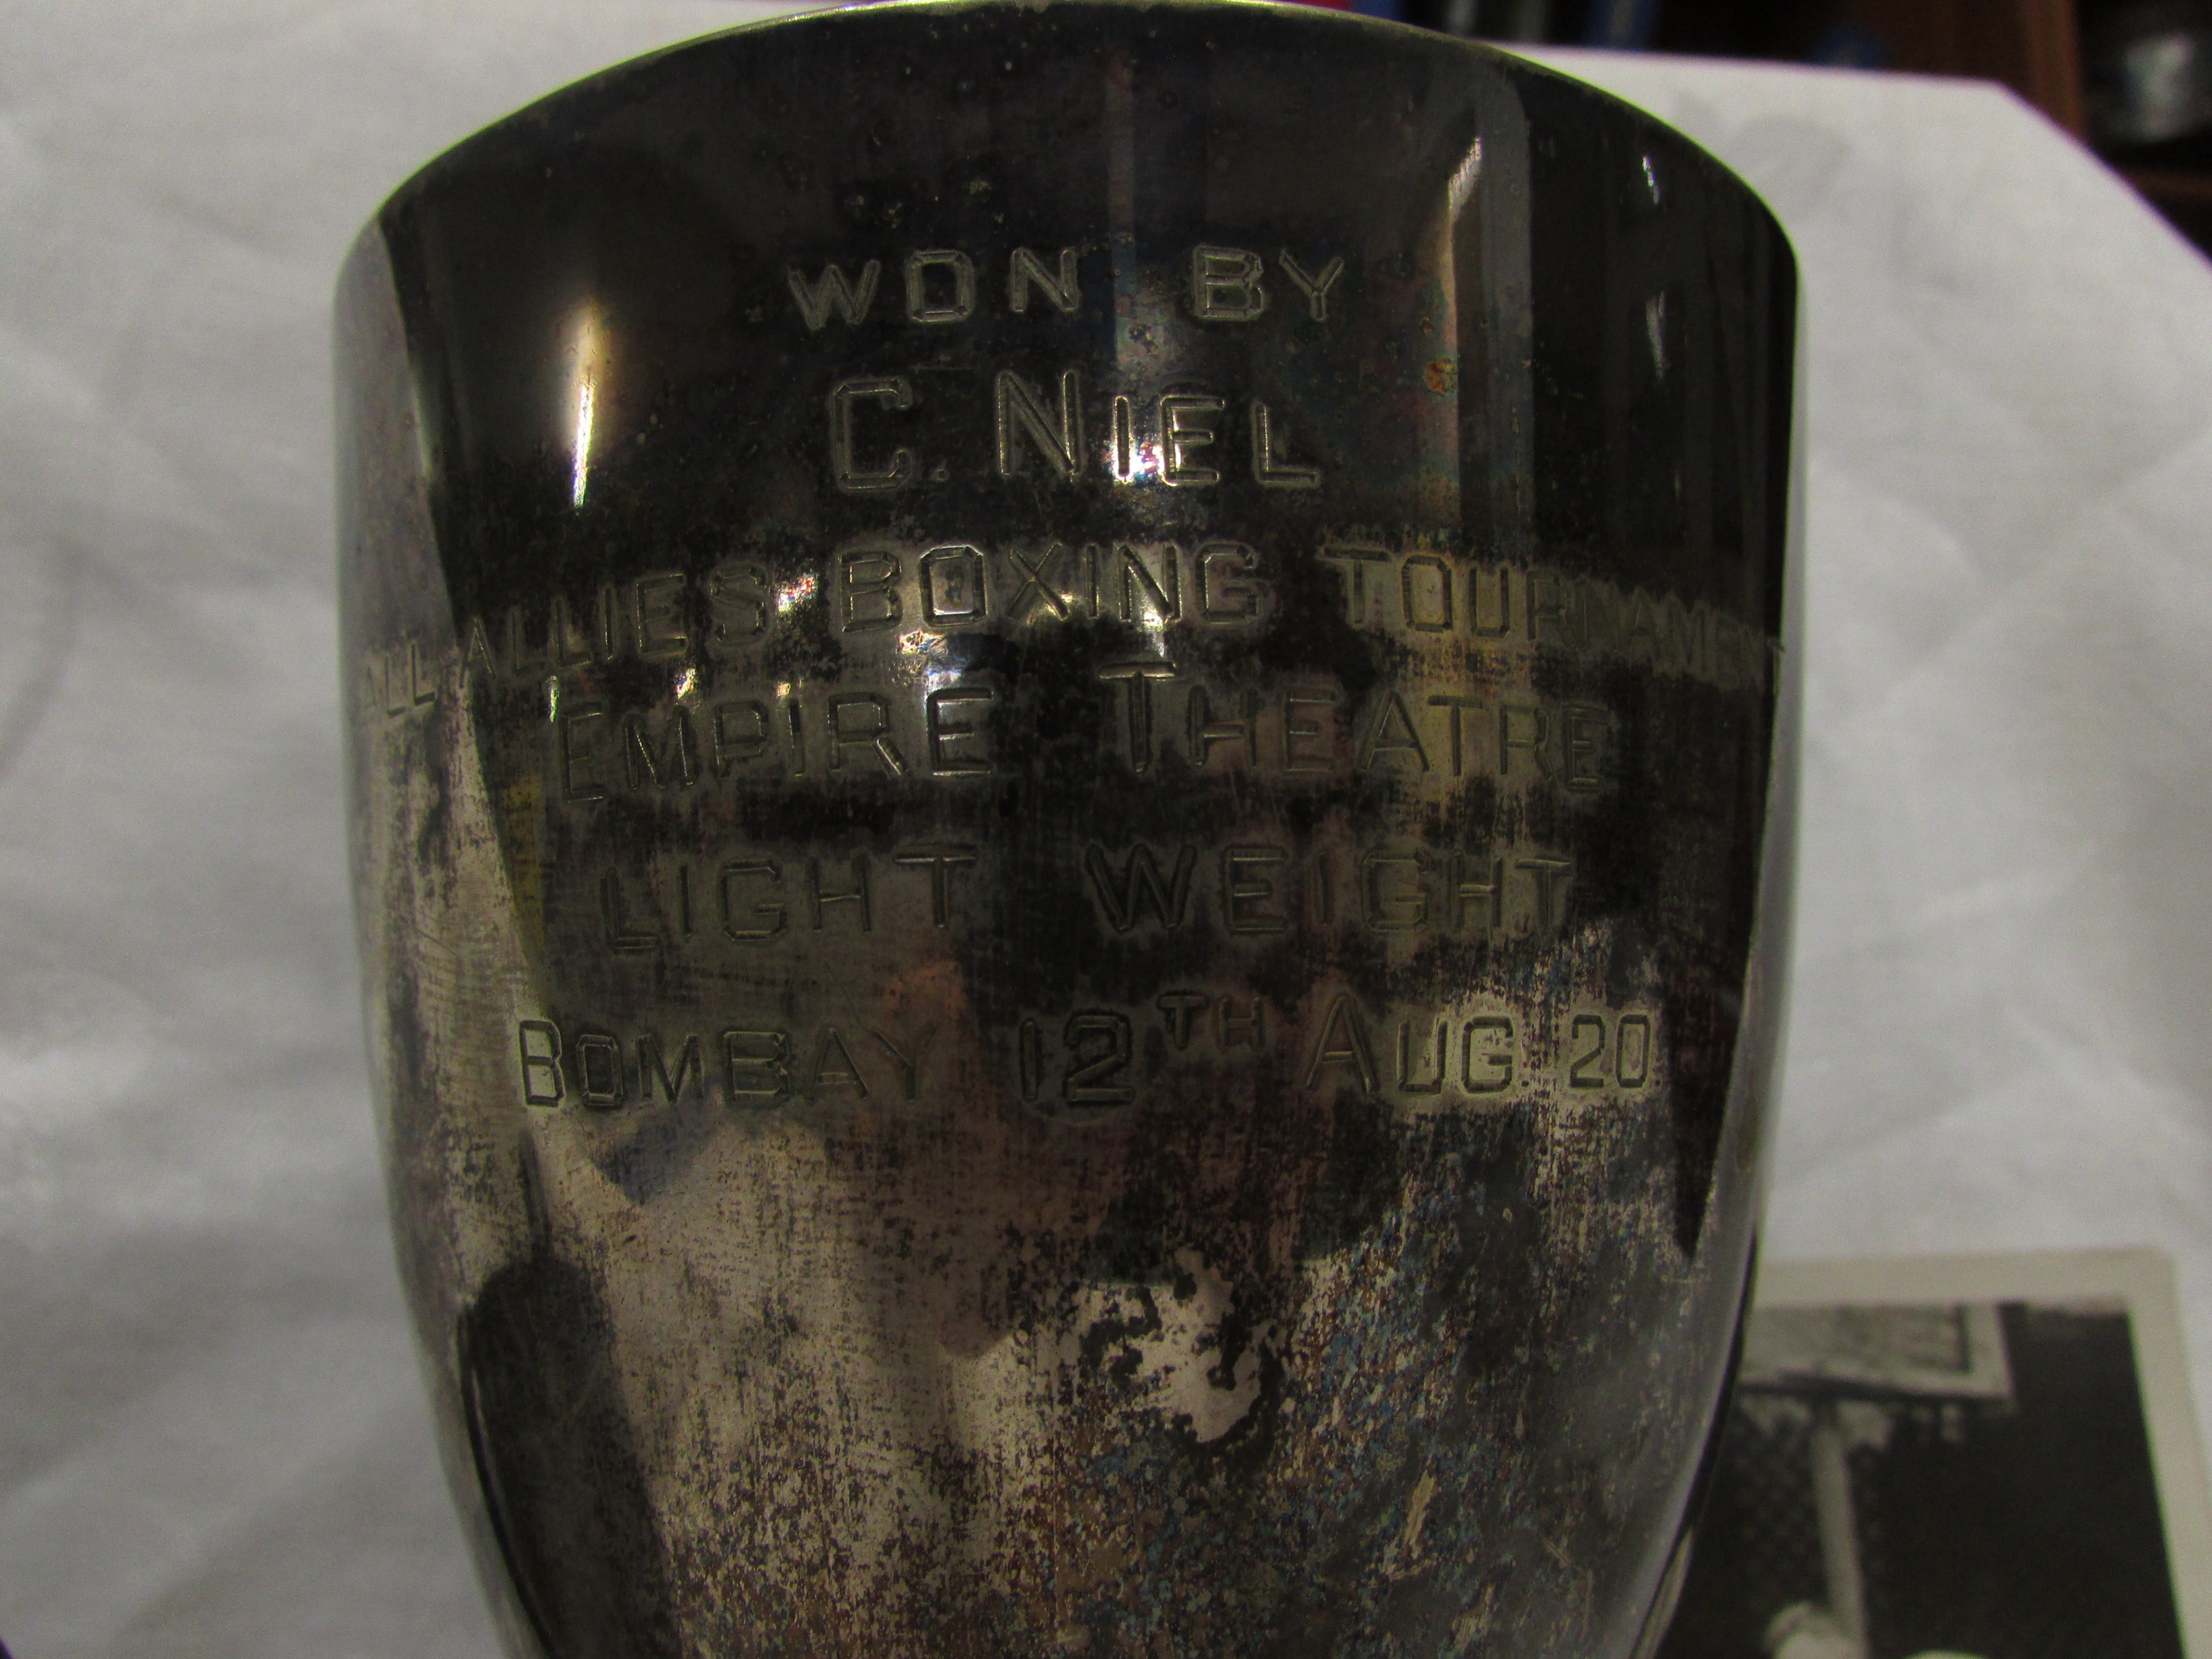 Lot 194 - Boxing interest - an electroplated trophy cup engraved 'WON BY C. NIEL ALL ALLIES BOXING